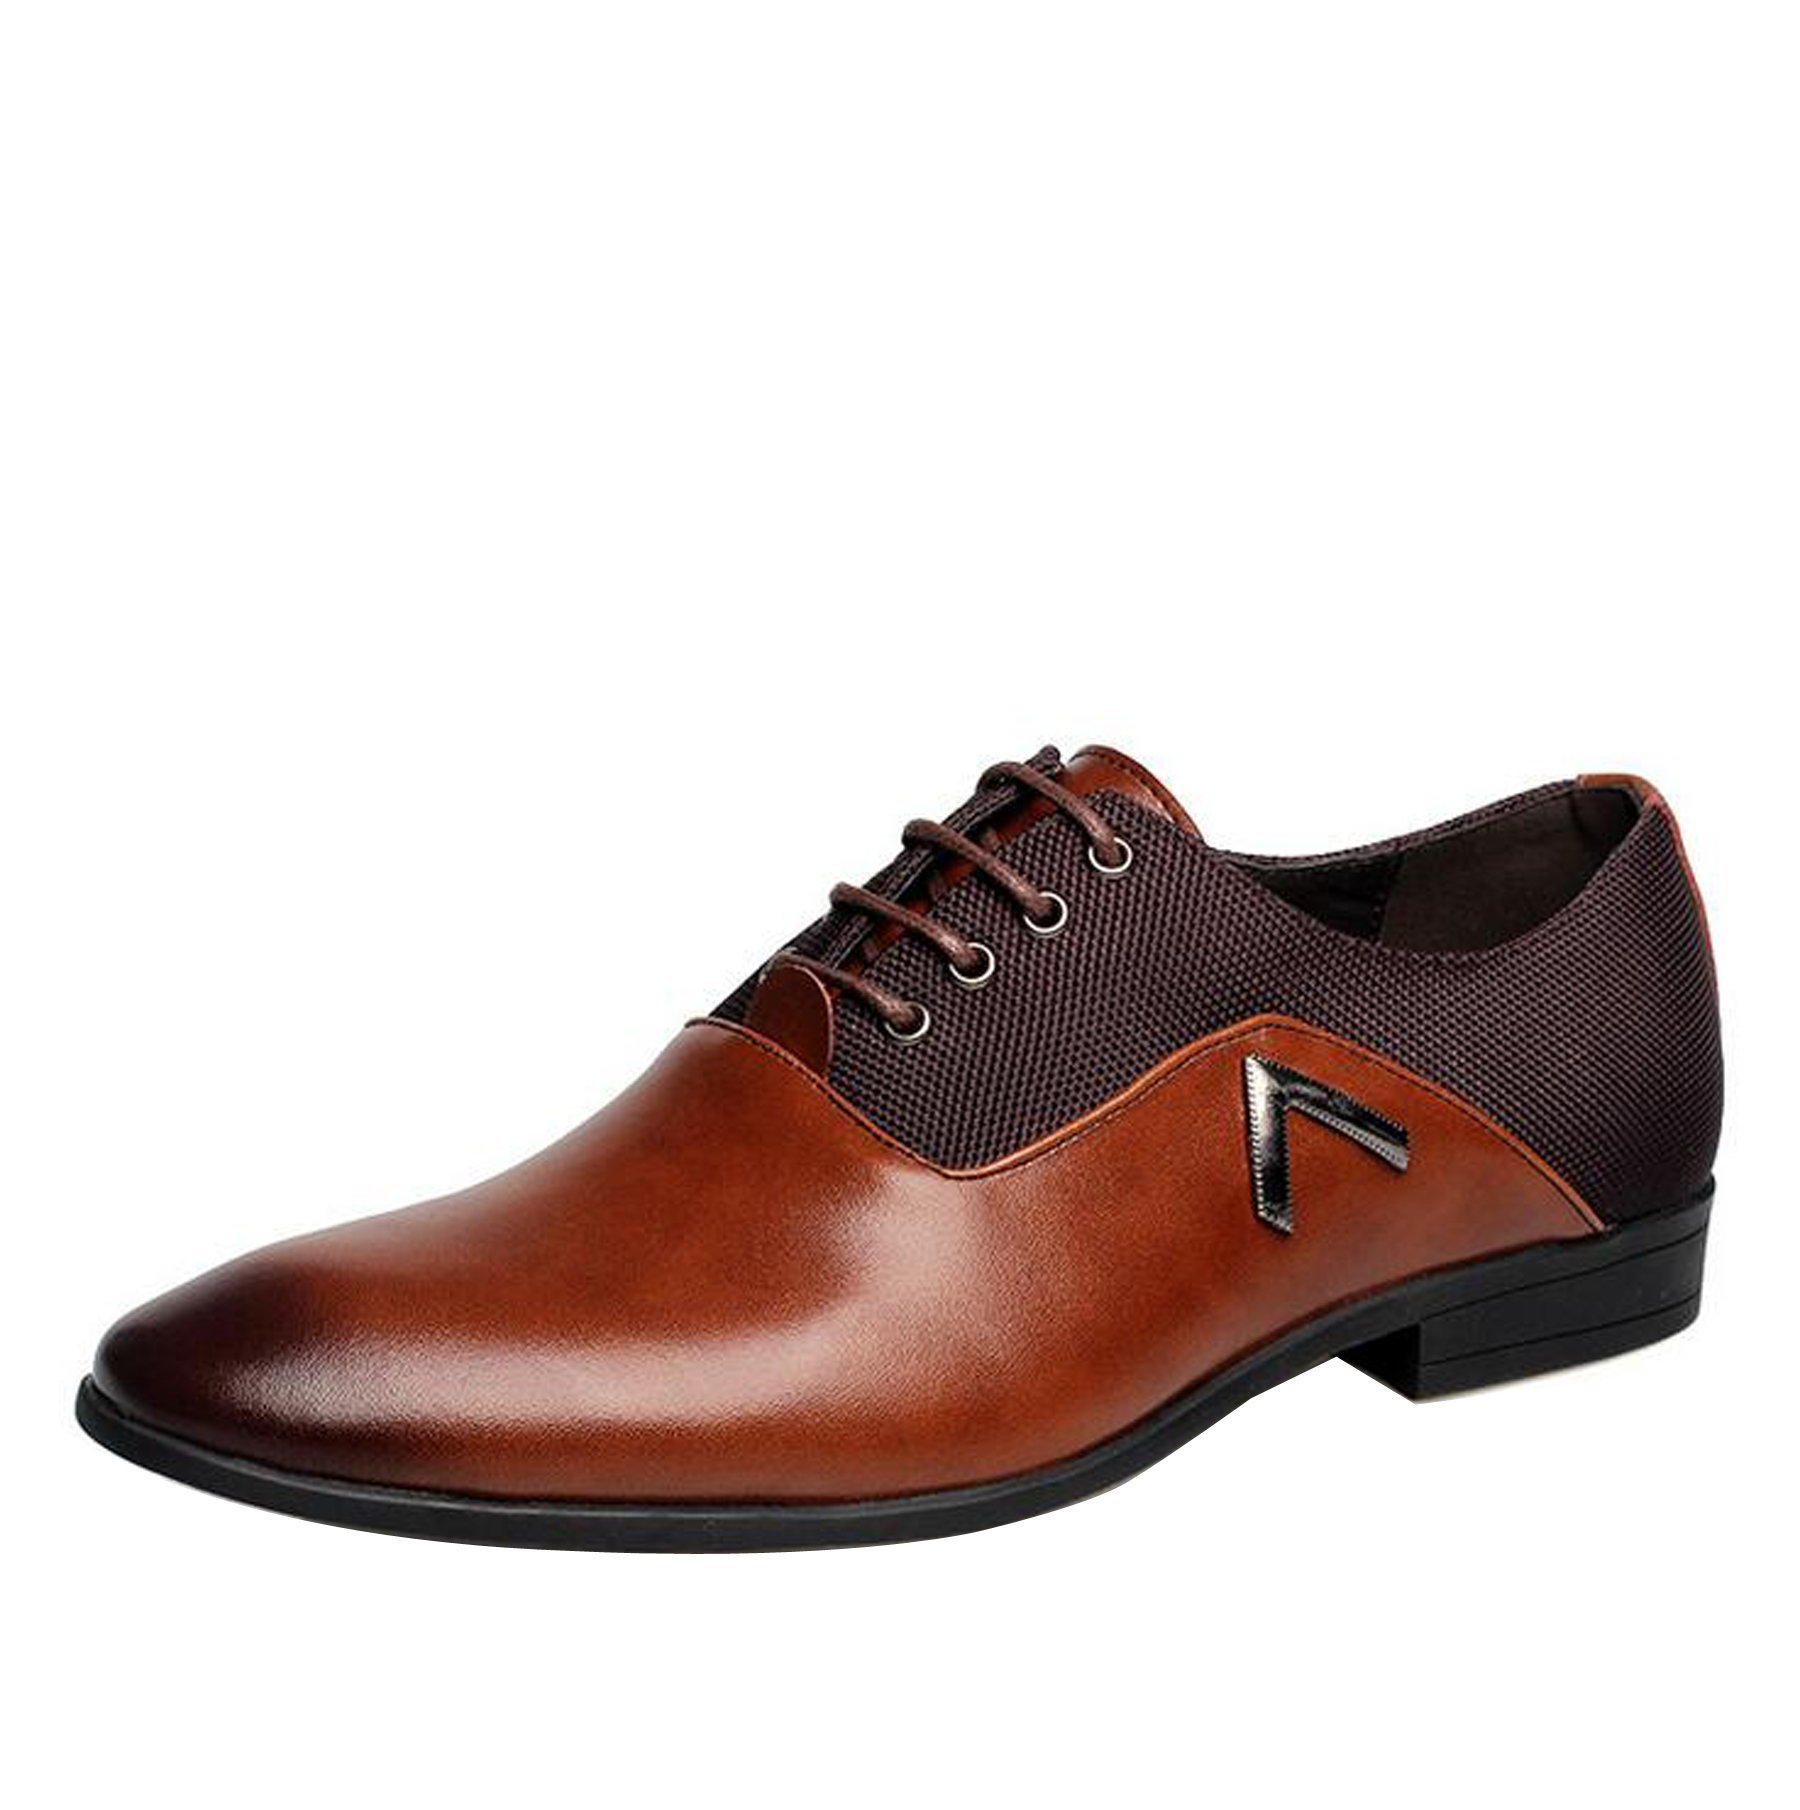 Men Pointed Toe Business Dress Formal Leather Shoes Flat Oxfords Loafers Slip On by Gaorui